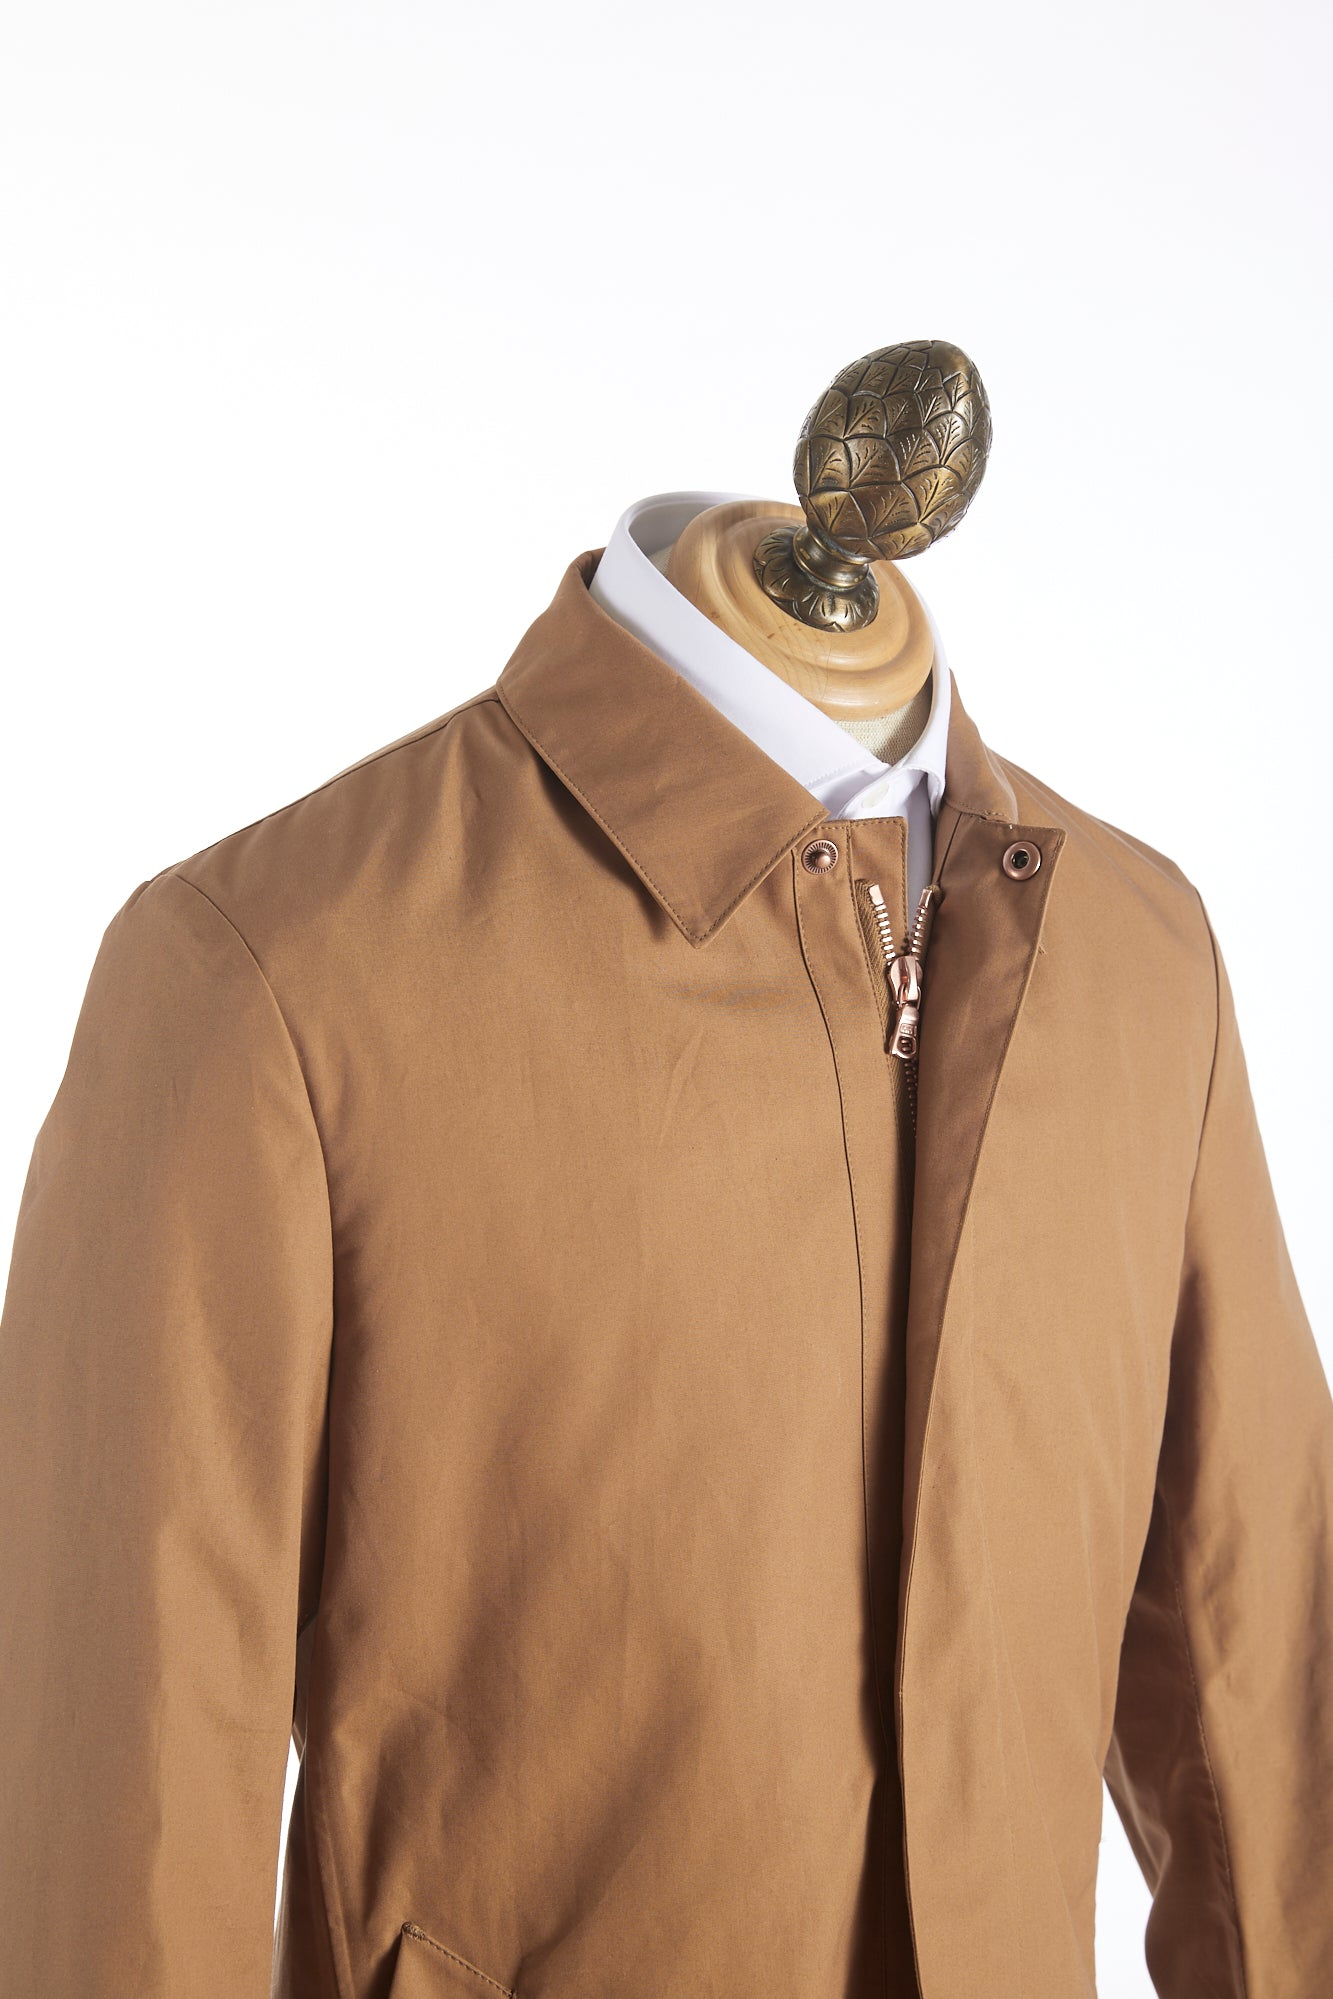 Private White V.C. Tan Cotton Ventile® Unlined Mac Coat Side